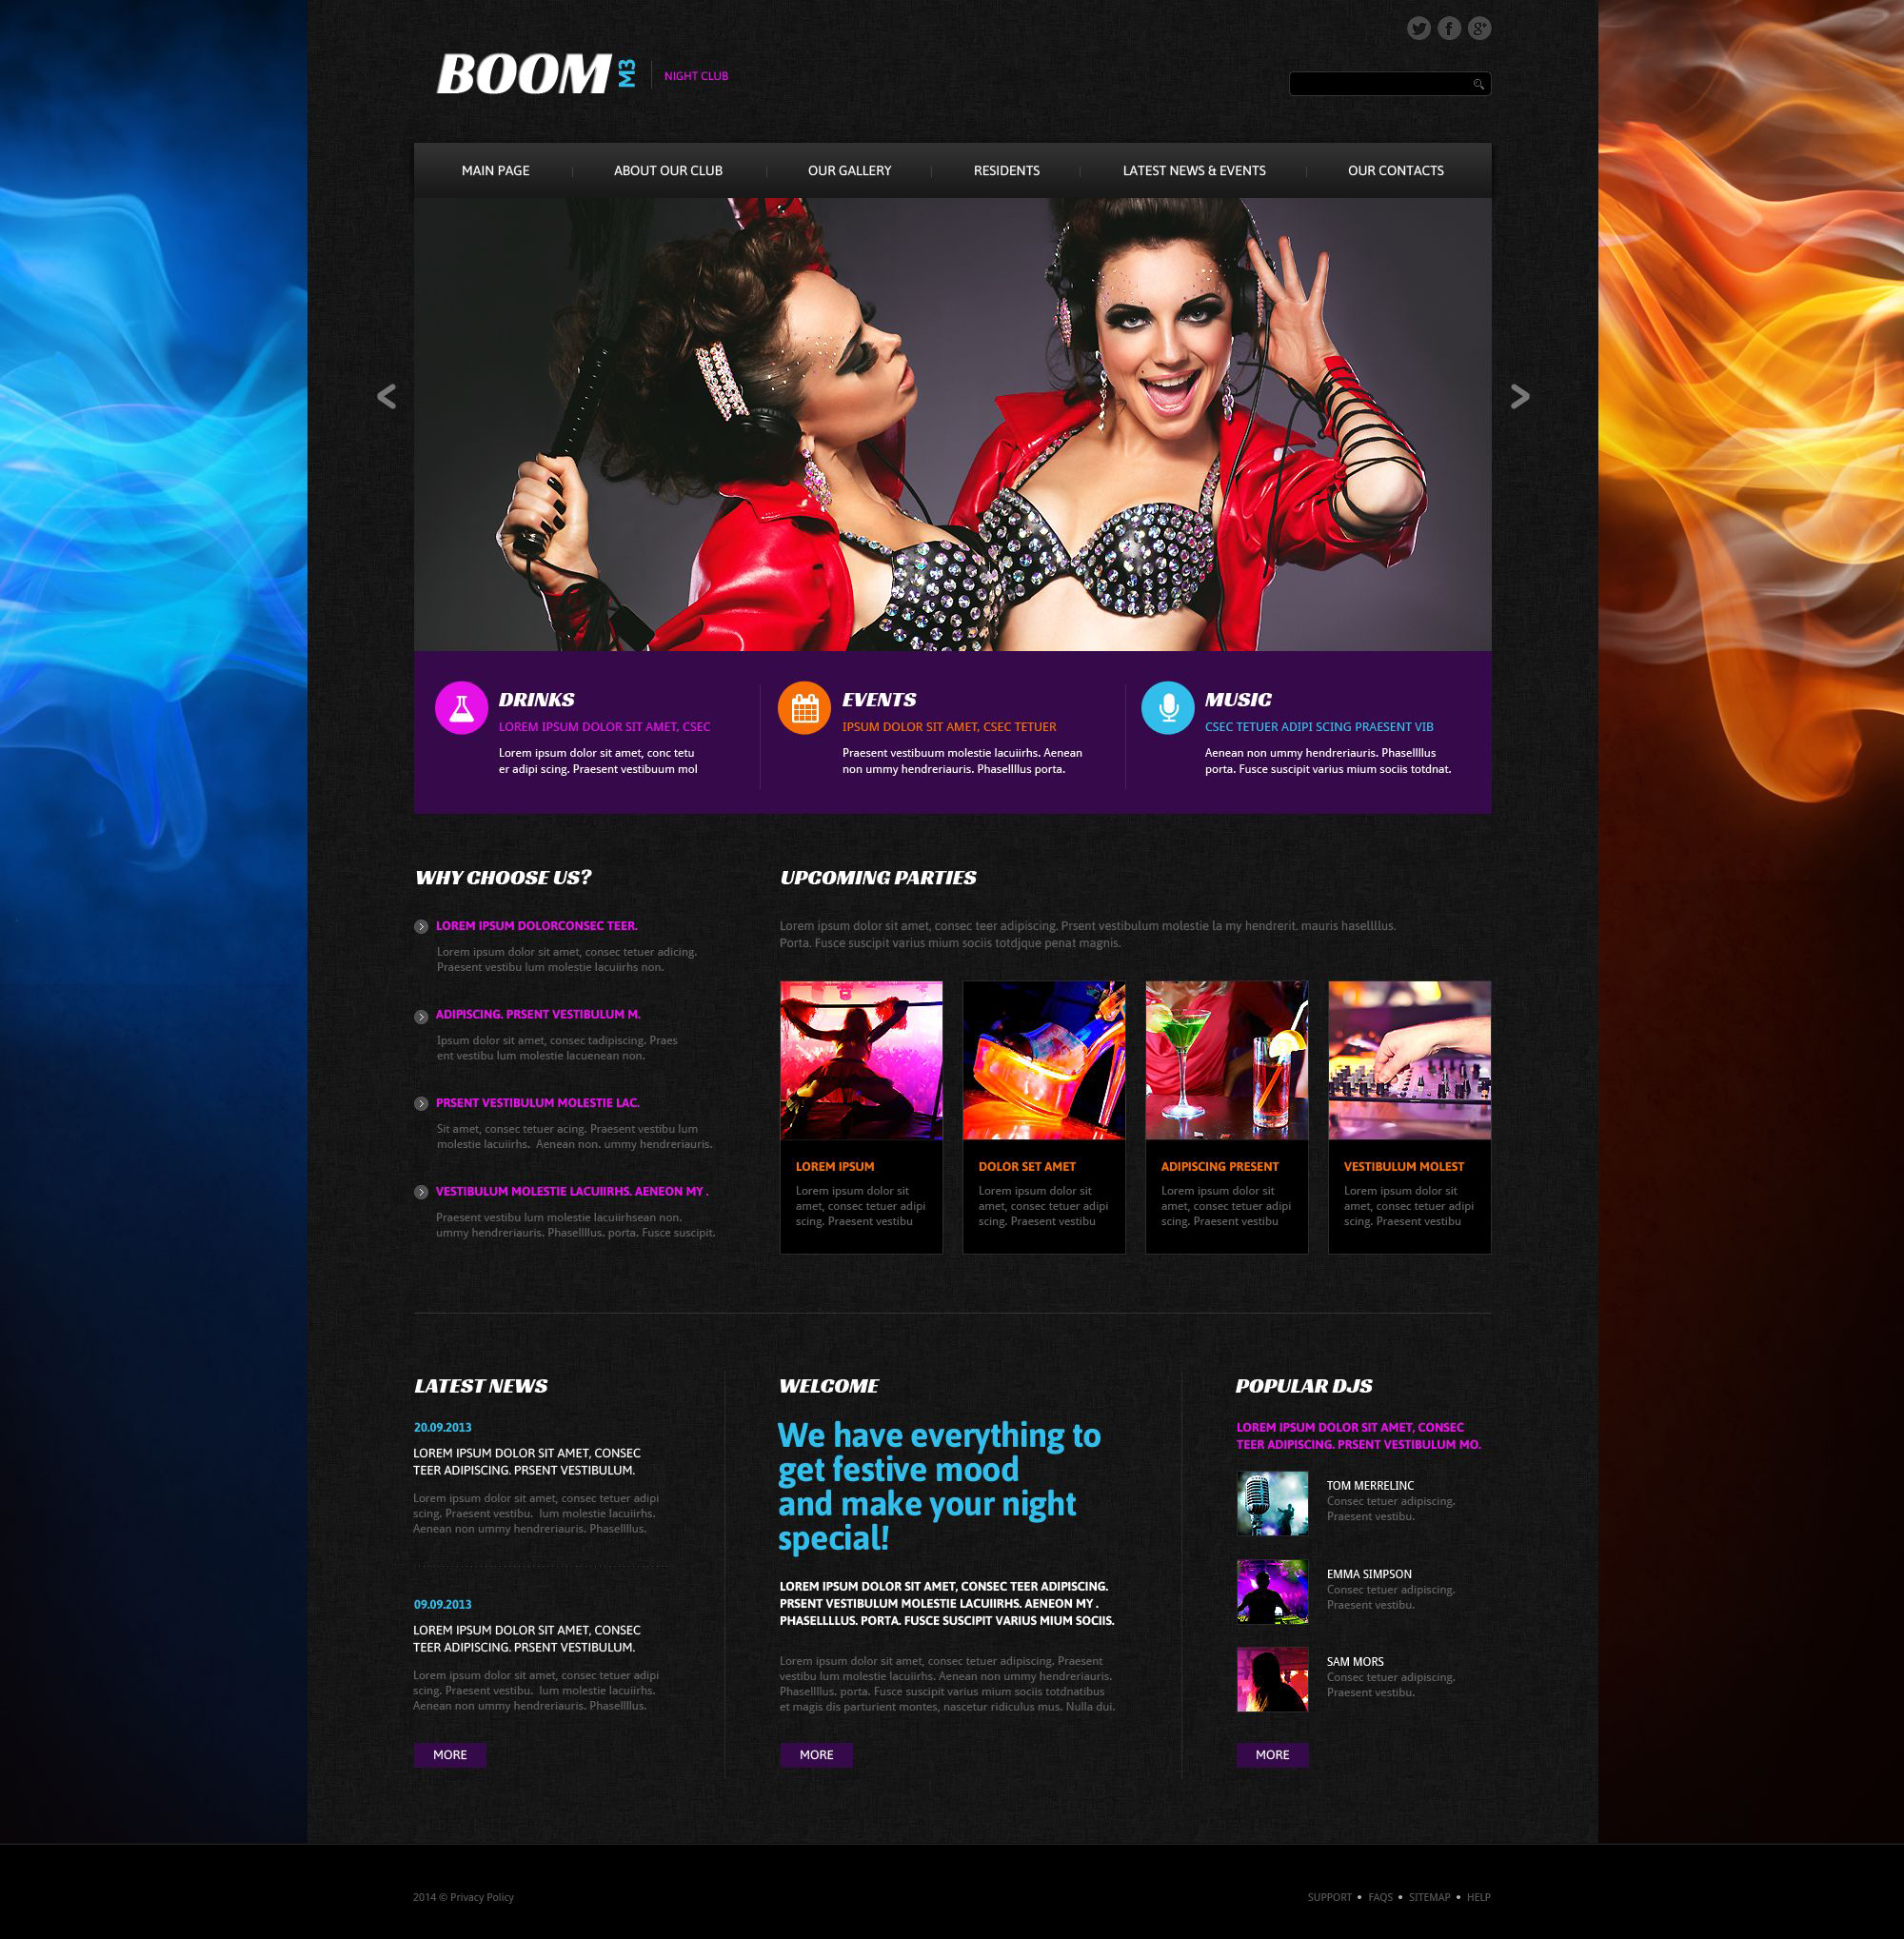 The Boom Night Club Responsive Javascript Animated Design 53472, one of the best website templates of its kind (night club, most popular), also known as boom night club website template, music website template, dances website template, dancers website template, entertainment website template, joy website template, energy website template, free drinks website template, tickets website template, party website template, deejays website template, dj website template, events website template, beats website template, disks website template, songs website template, tunes website template, rhythms website template, gallery website template, photos website template, pictures website template, guests website template, participants website template, interview website template, stars website template, artists website template, funs website template, booking website template, mob website template, glamour girls website template, party website template, MC cocktail and related with boom night club, music, dances, dancers, entertainment, joy, energy, free drinks, tickets, party, deejays, dj, events, beats, disks, songs, tunes, rhythms, gallery, photos, pictures, guests, participants, interview, stars, artists, funs, booking, mob, glamour girls, party, MC cocktail, etc.